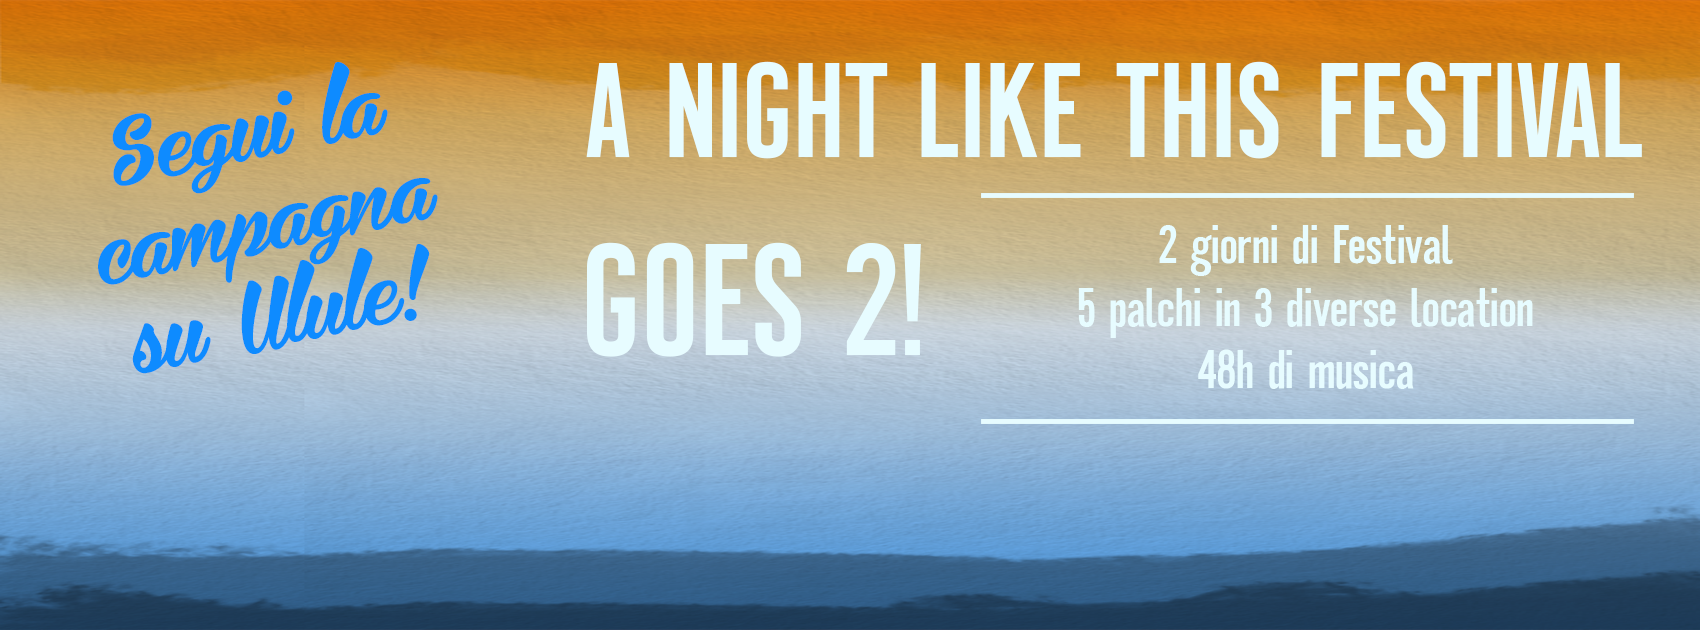 A Night Like This Festival Goes 2!